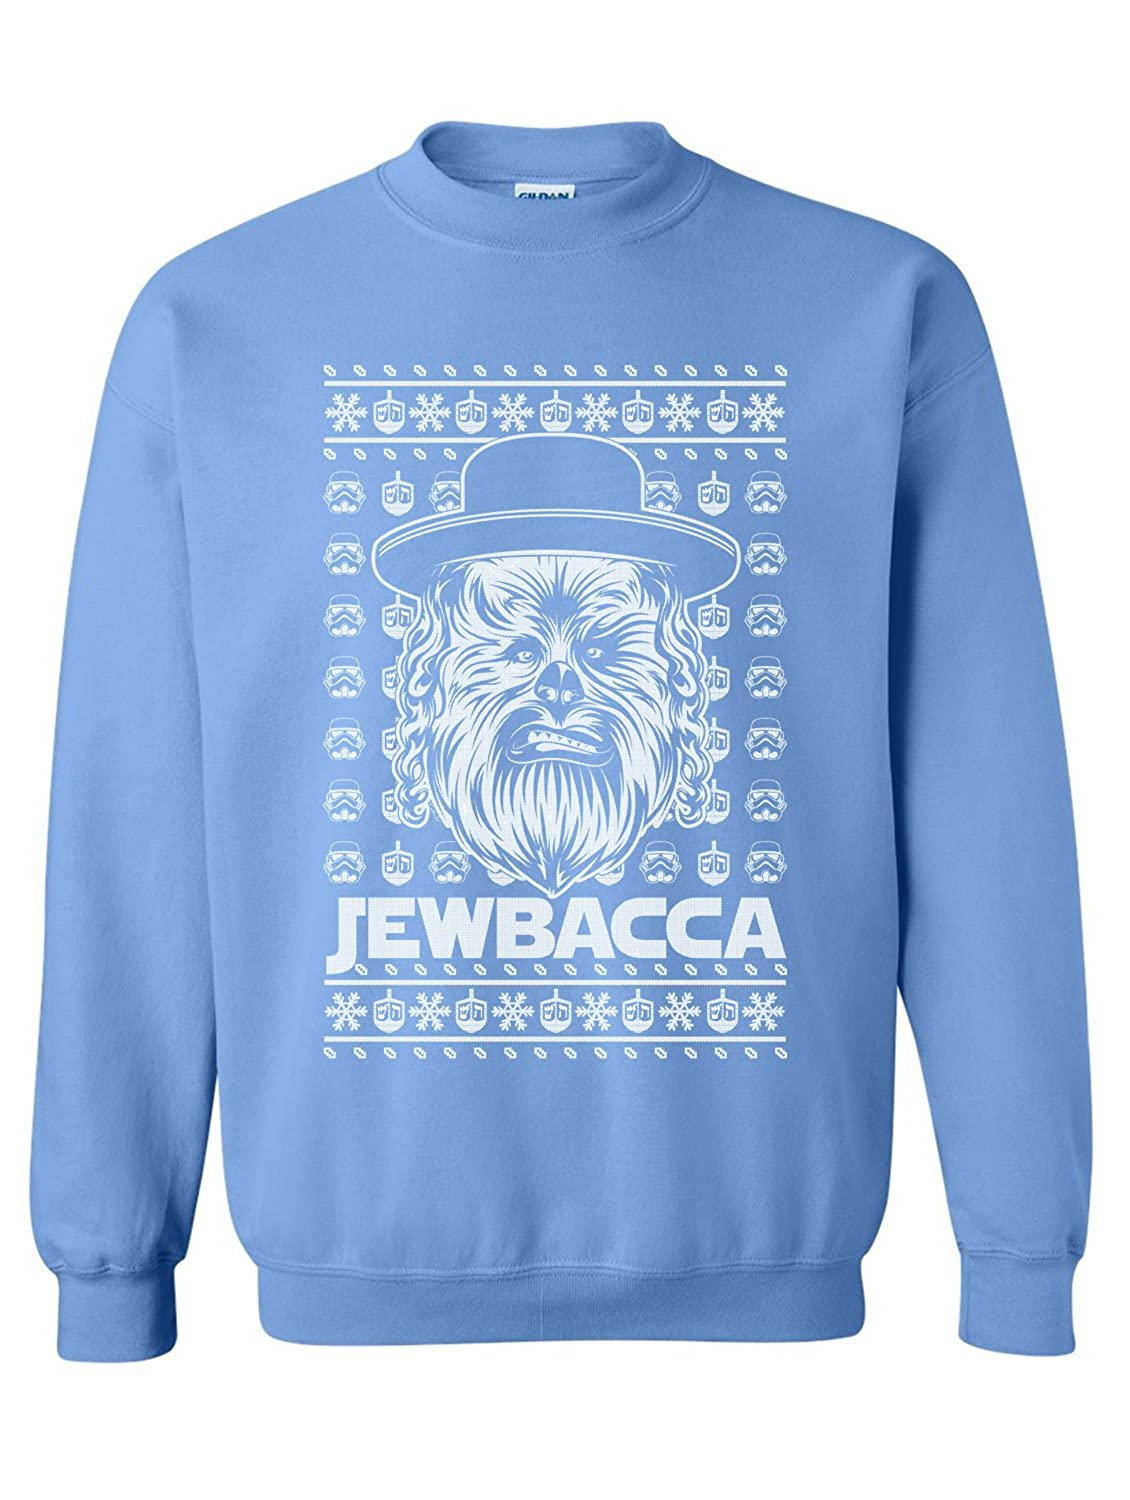 Jewish Holiday Sweater Sale | www.topsimages.com